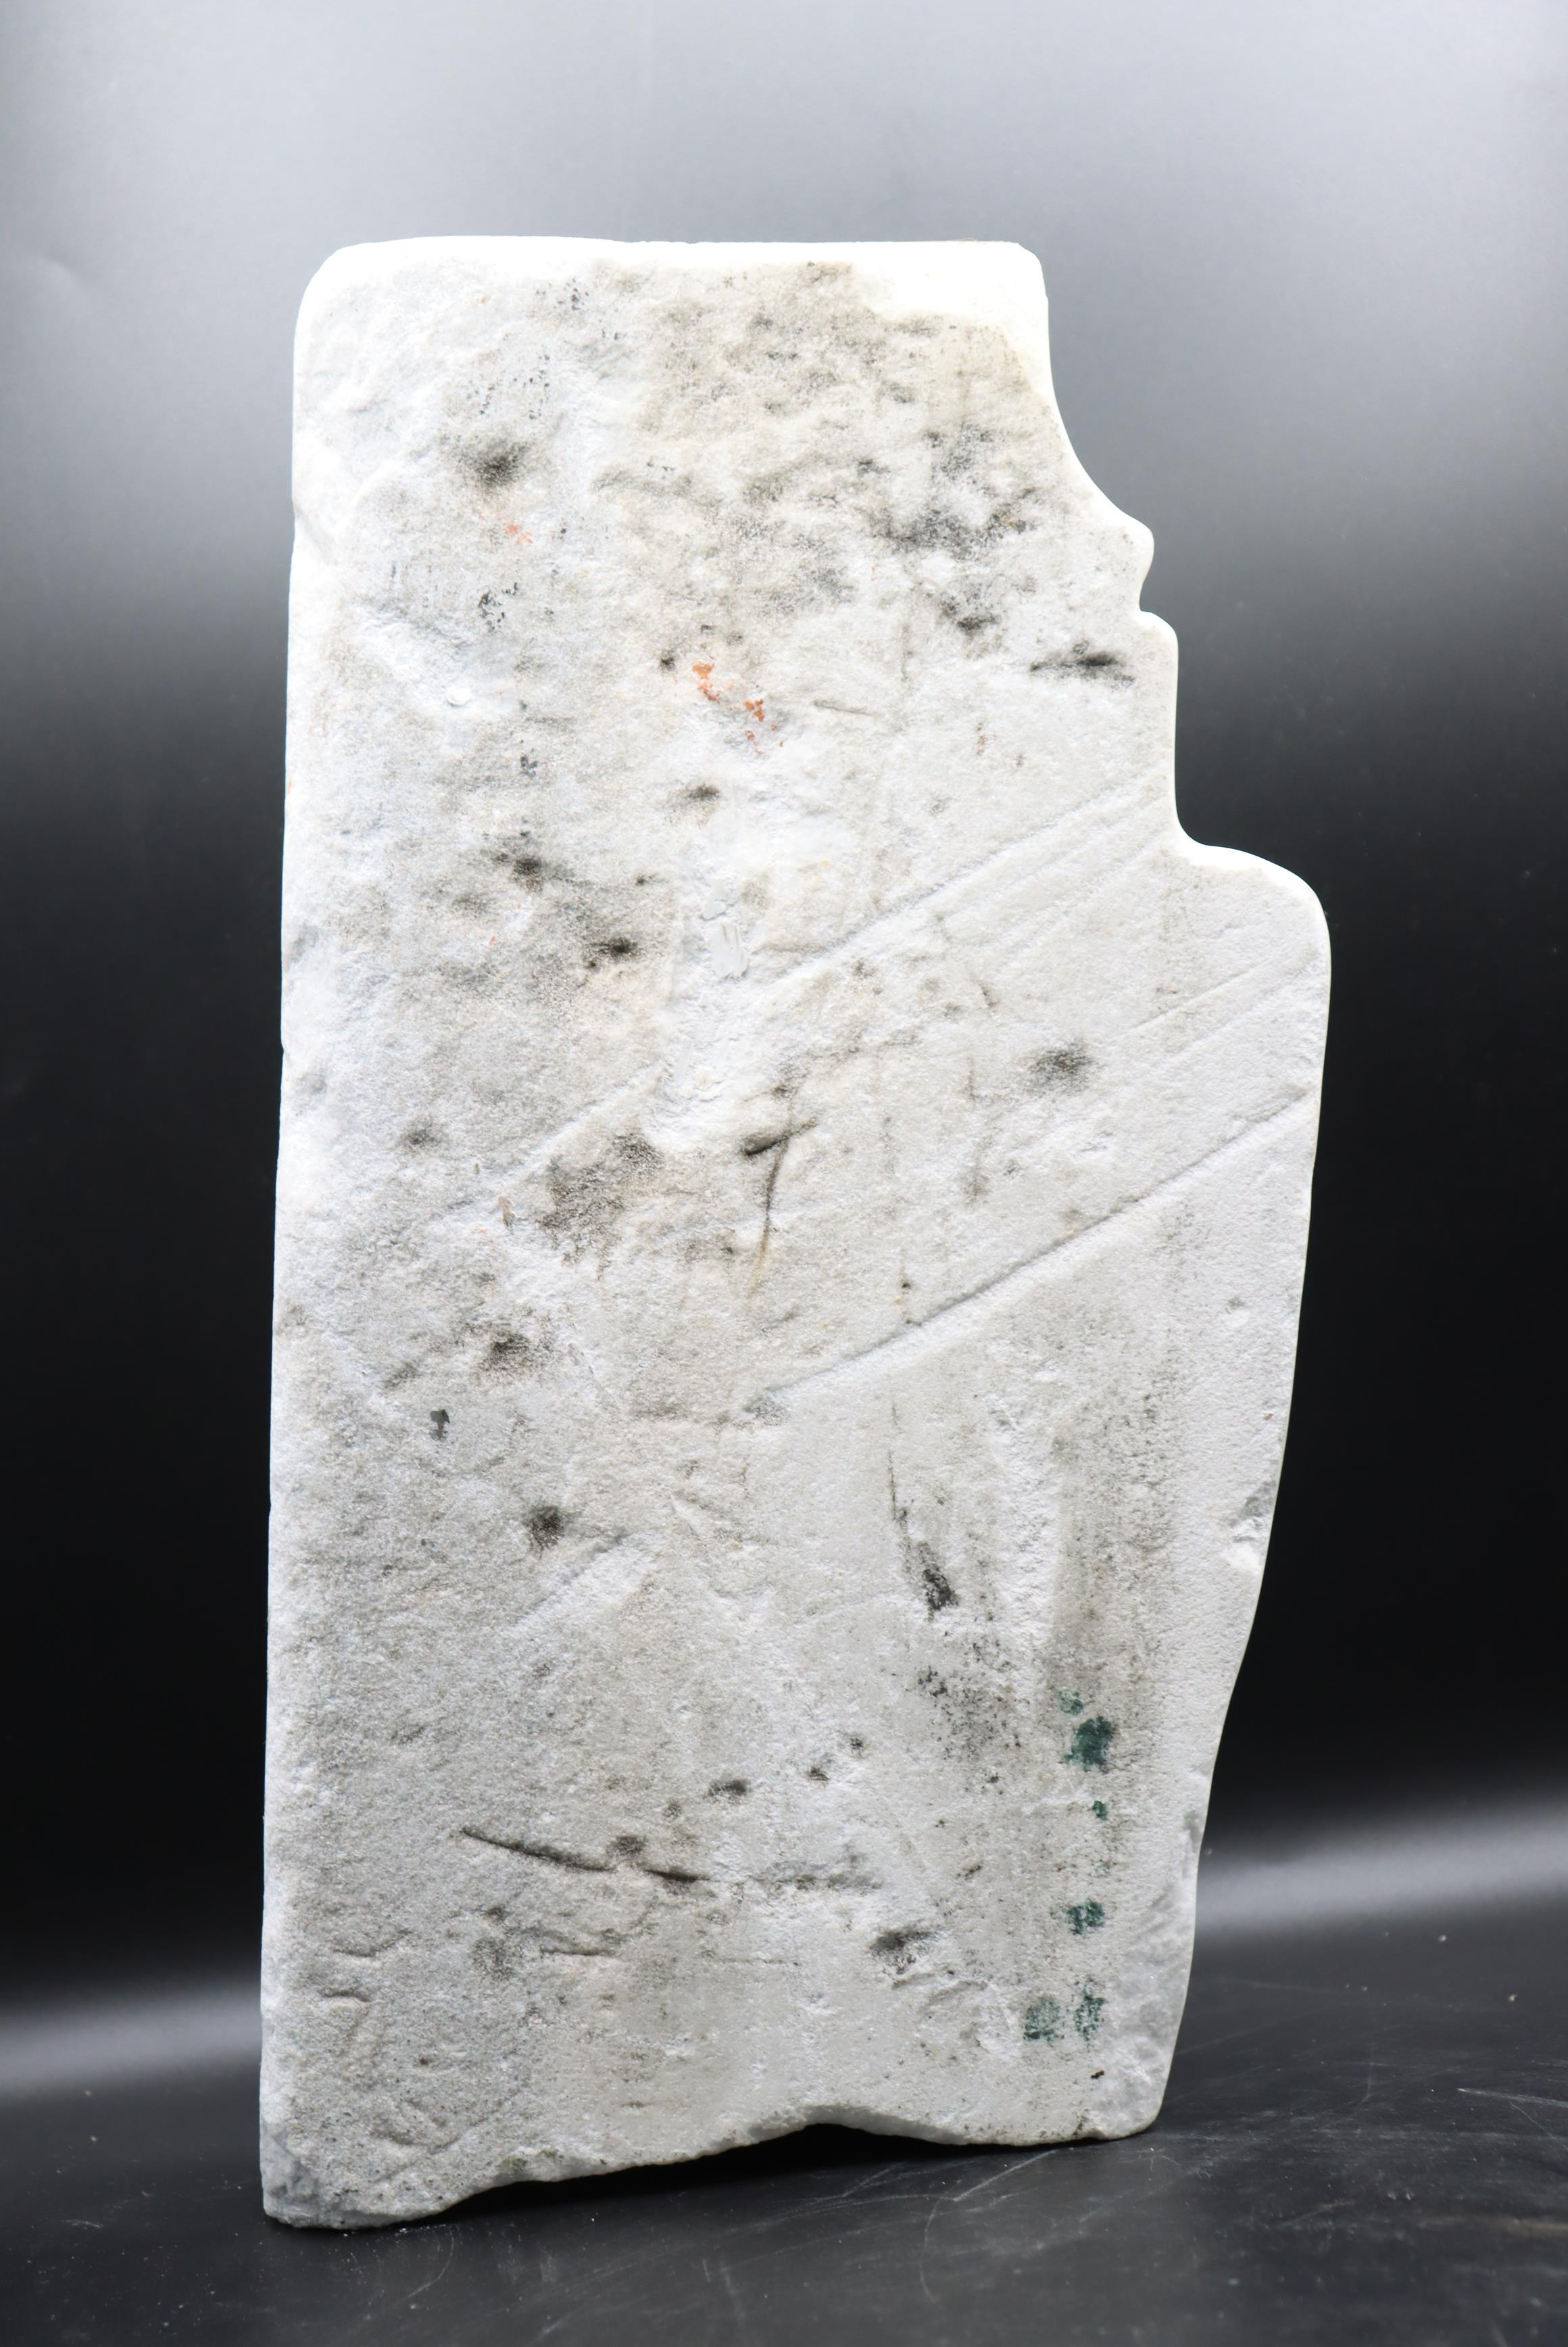 Abstract Marble Fragments of a Face - Image 8 of 9